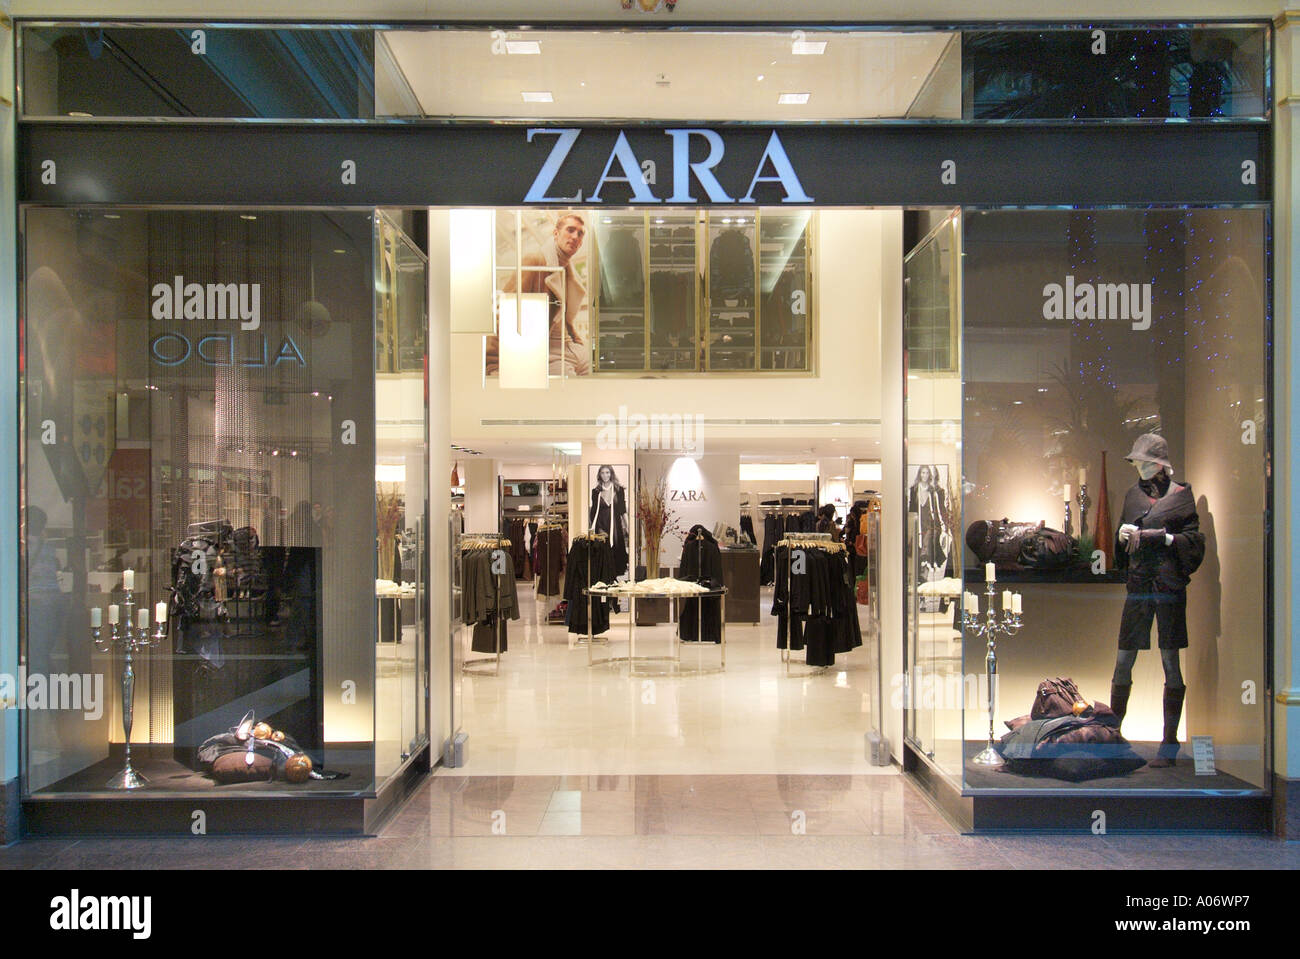 zara home store stockfotos zara home store bilder alamy. Black Bedroom Furniture Sets. Home Design Ideas